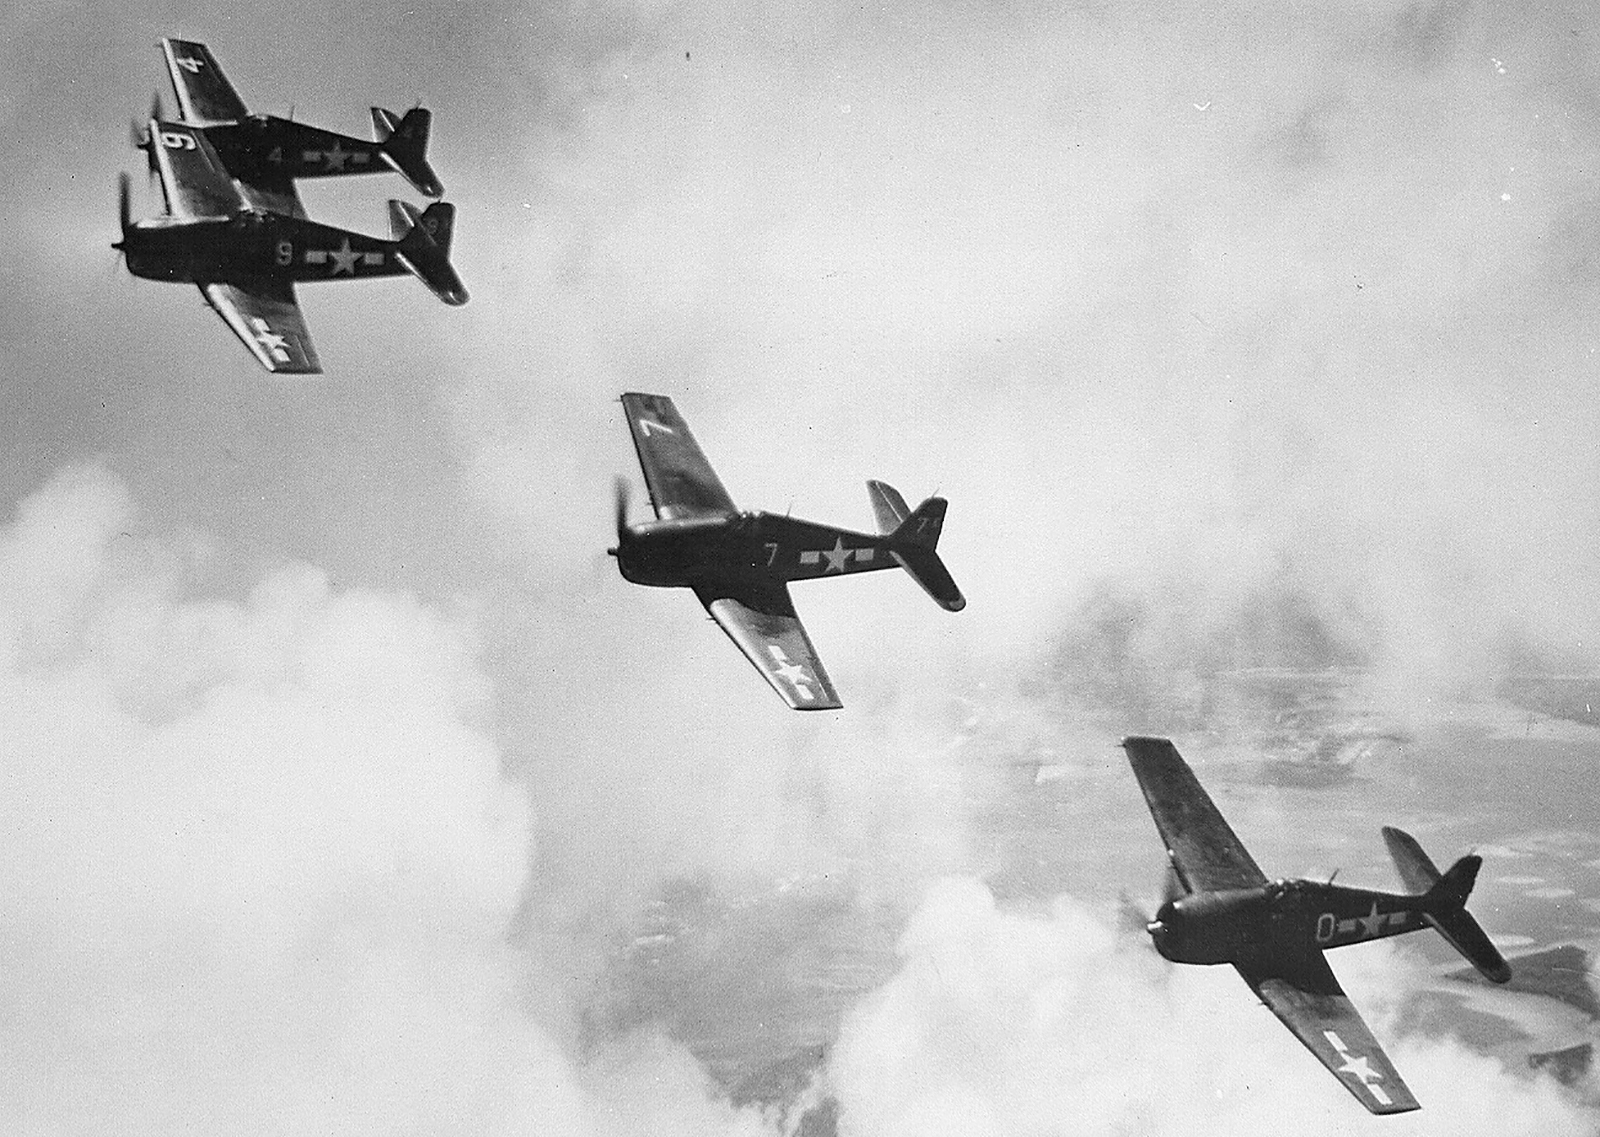 Grumman F6F 3 Hellcat VF 1 White K0, K7, K9 and K4 in formation CV 10 USS Yorktown II June 1944 01